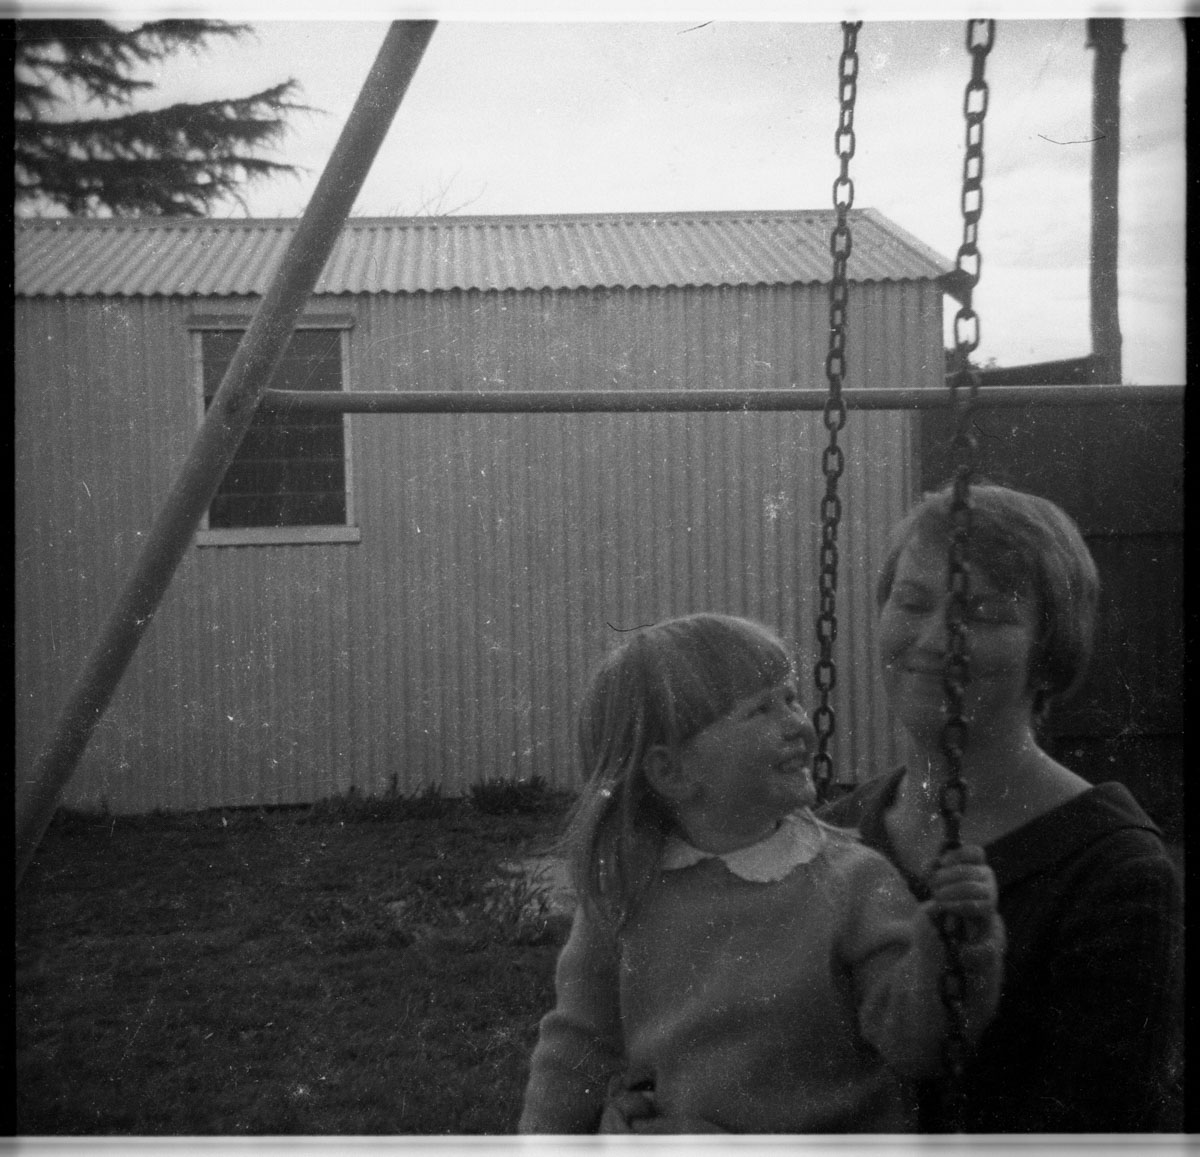 My sister with my mum. Some on the roll were before the wedding, some after. Her fringe is really neat here; maybe it had just been cut so she could be a flower girl.